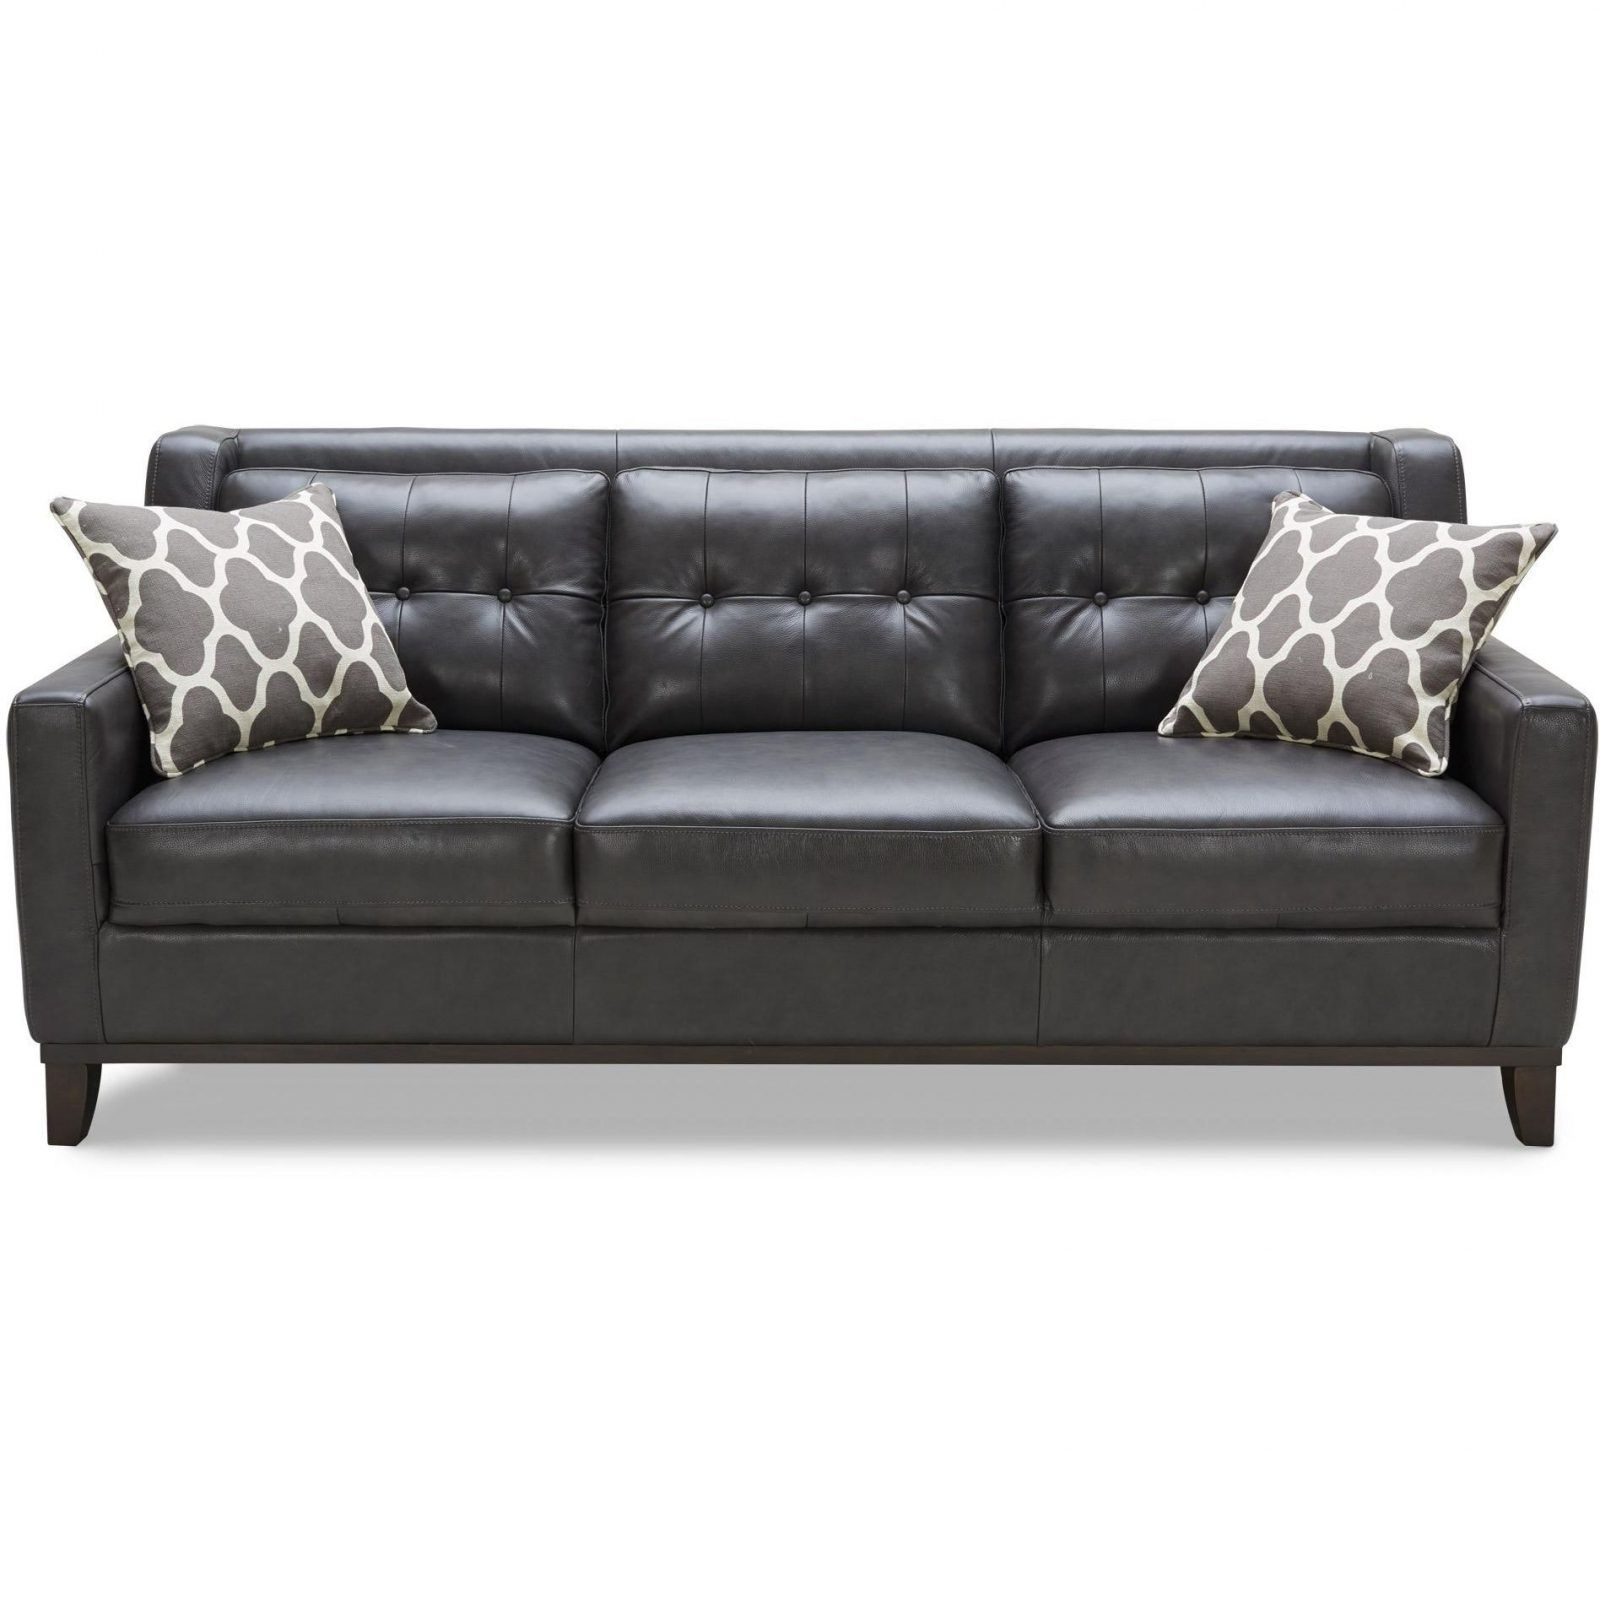 Halcyon Leather Sofa Furniture Village X5h2lfad